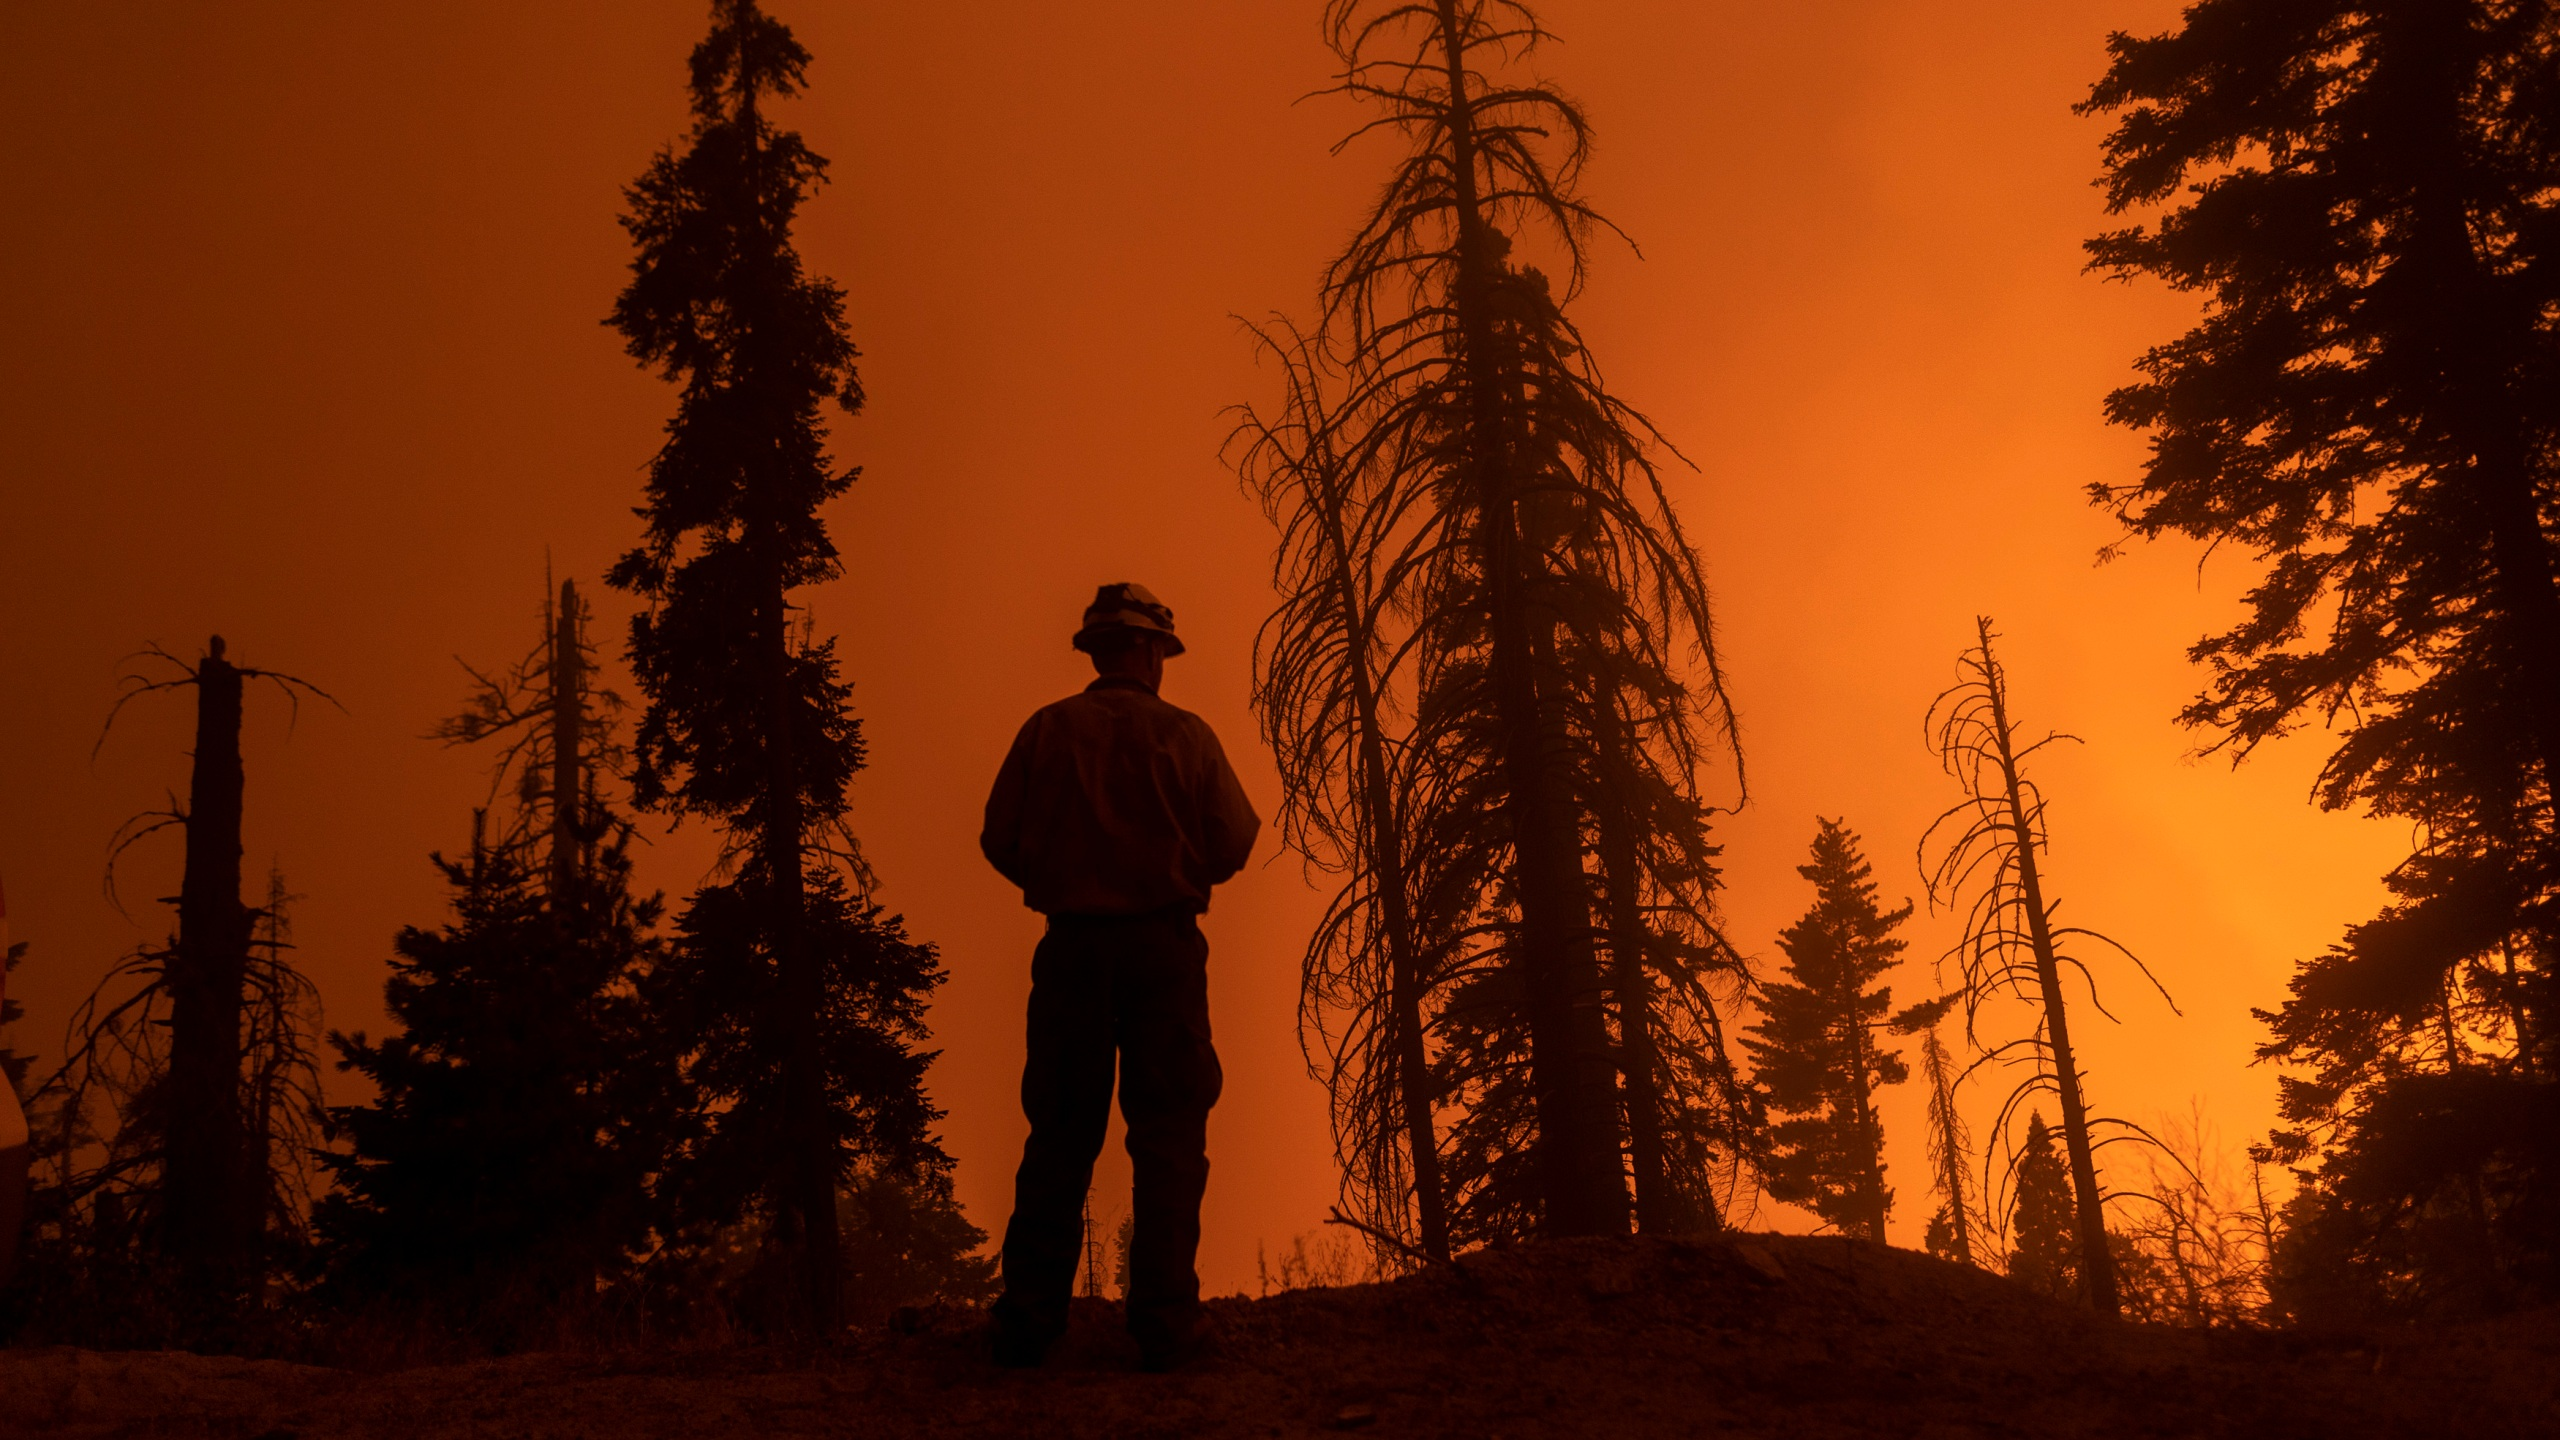 A firefighter keeps watch as flames advance along the Western Divide Highway during the SQF Complex Fire near Camp Nelson on Sept. 14, 2020. (David McNew / Getty Images)